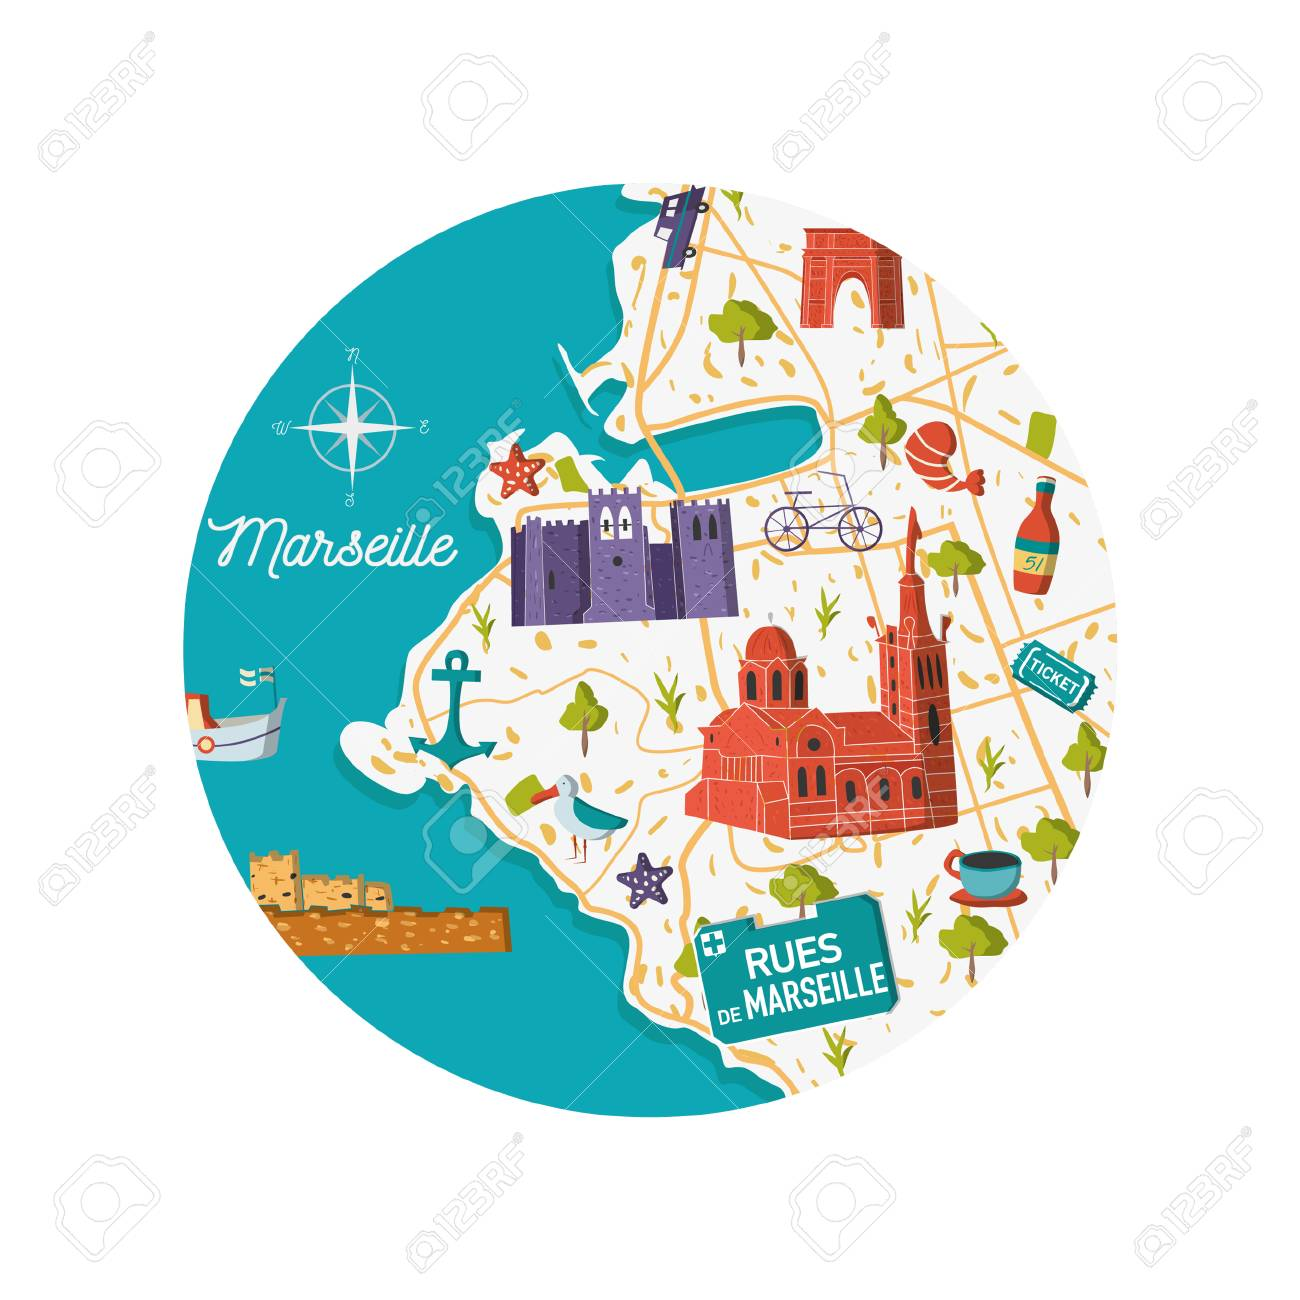 South Of France Cities Map.France Marseille Vector City Map Illustration Cartoon Sightseeing